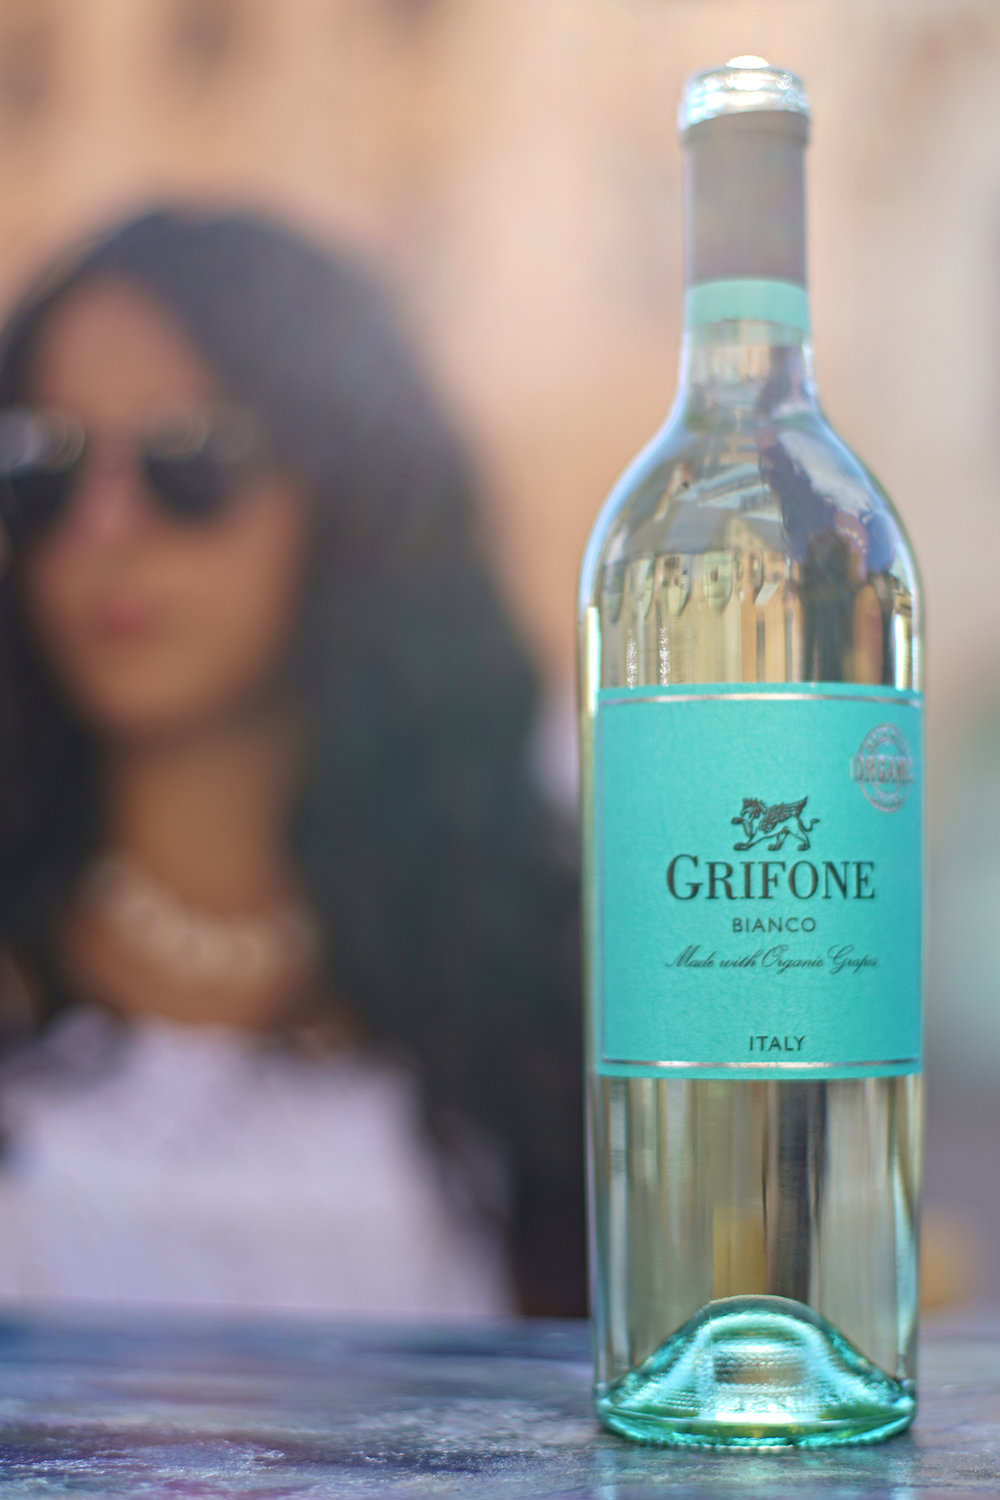 GRIFONE WHITE BLEND #WINEOFITALY